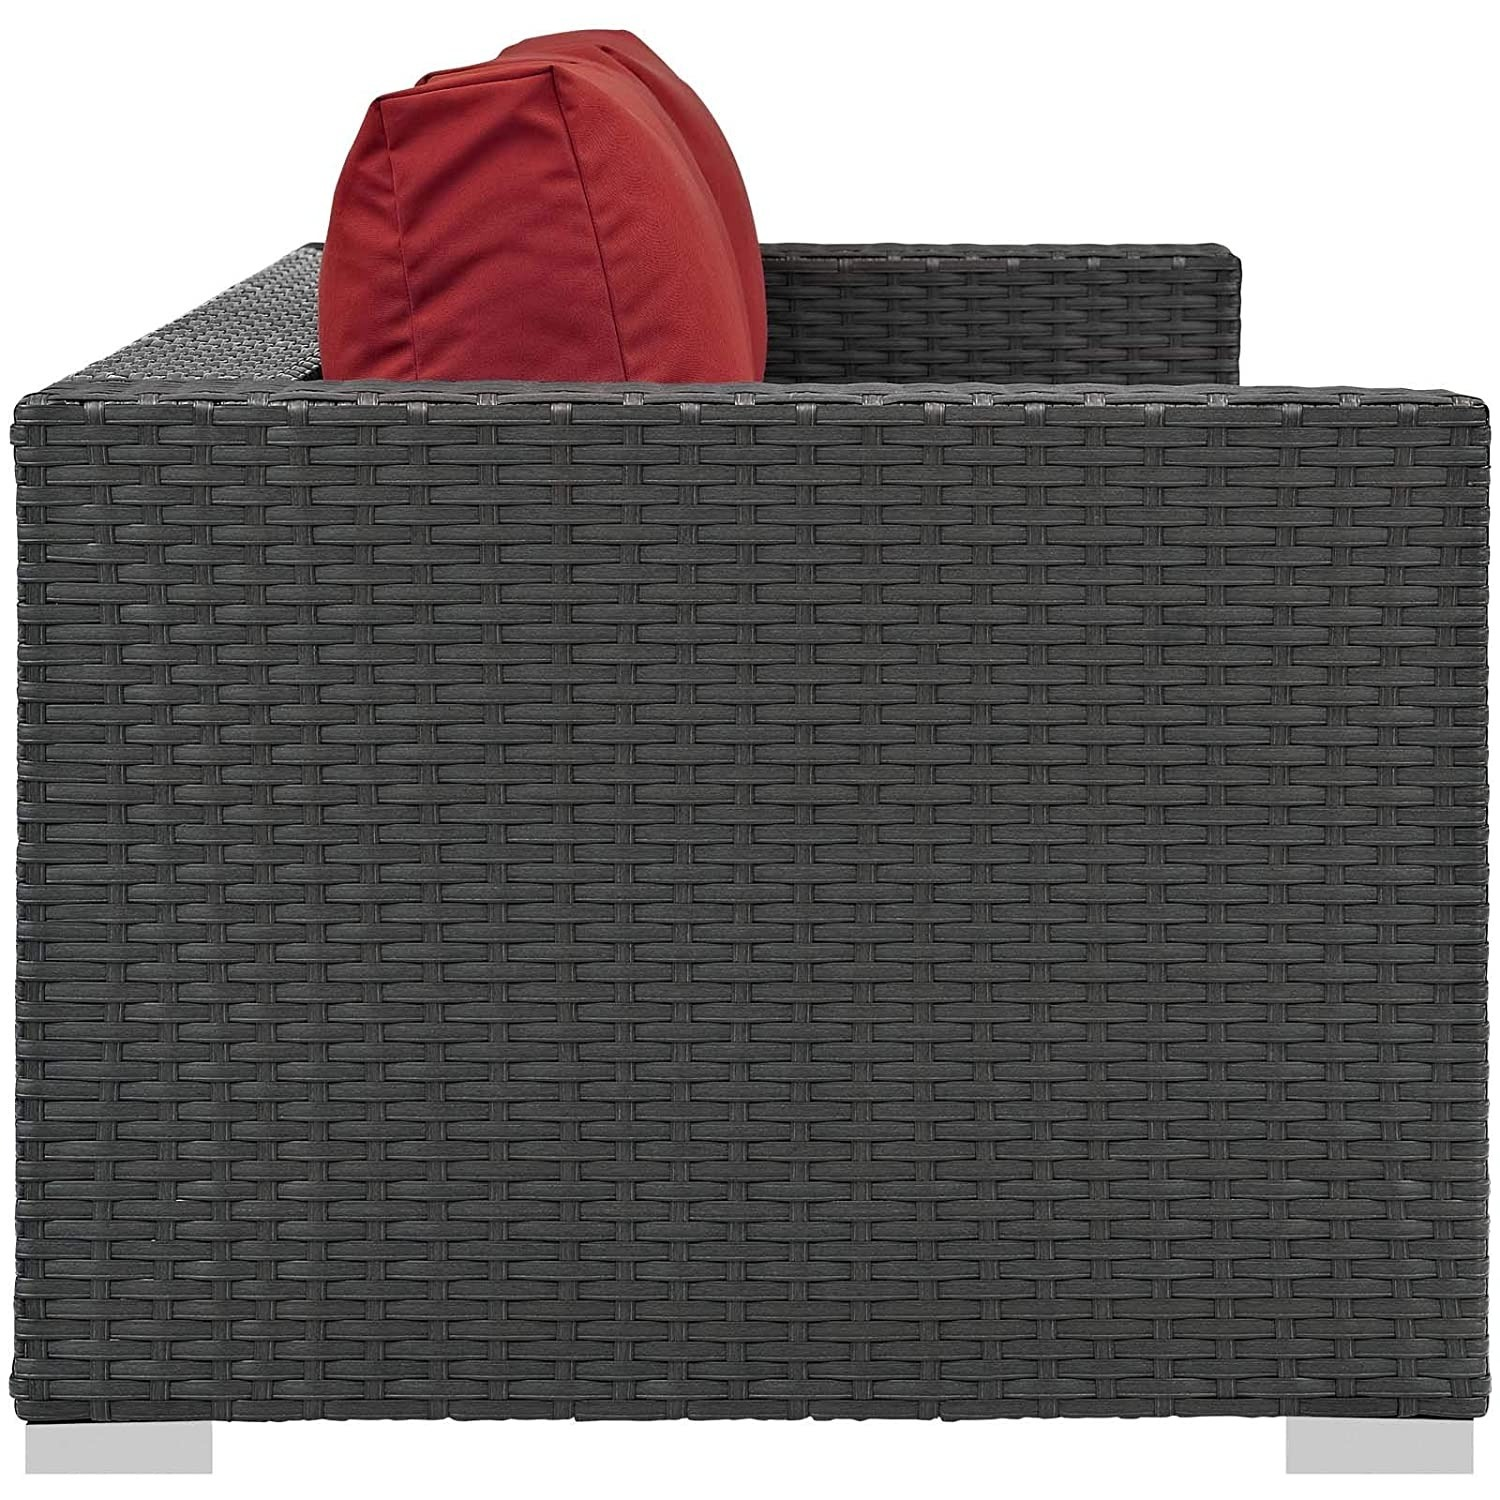 Outdoor Sofa In Rattan Weave Finish W/ Red Cushion - image-1